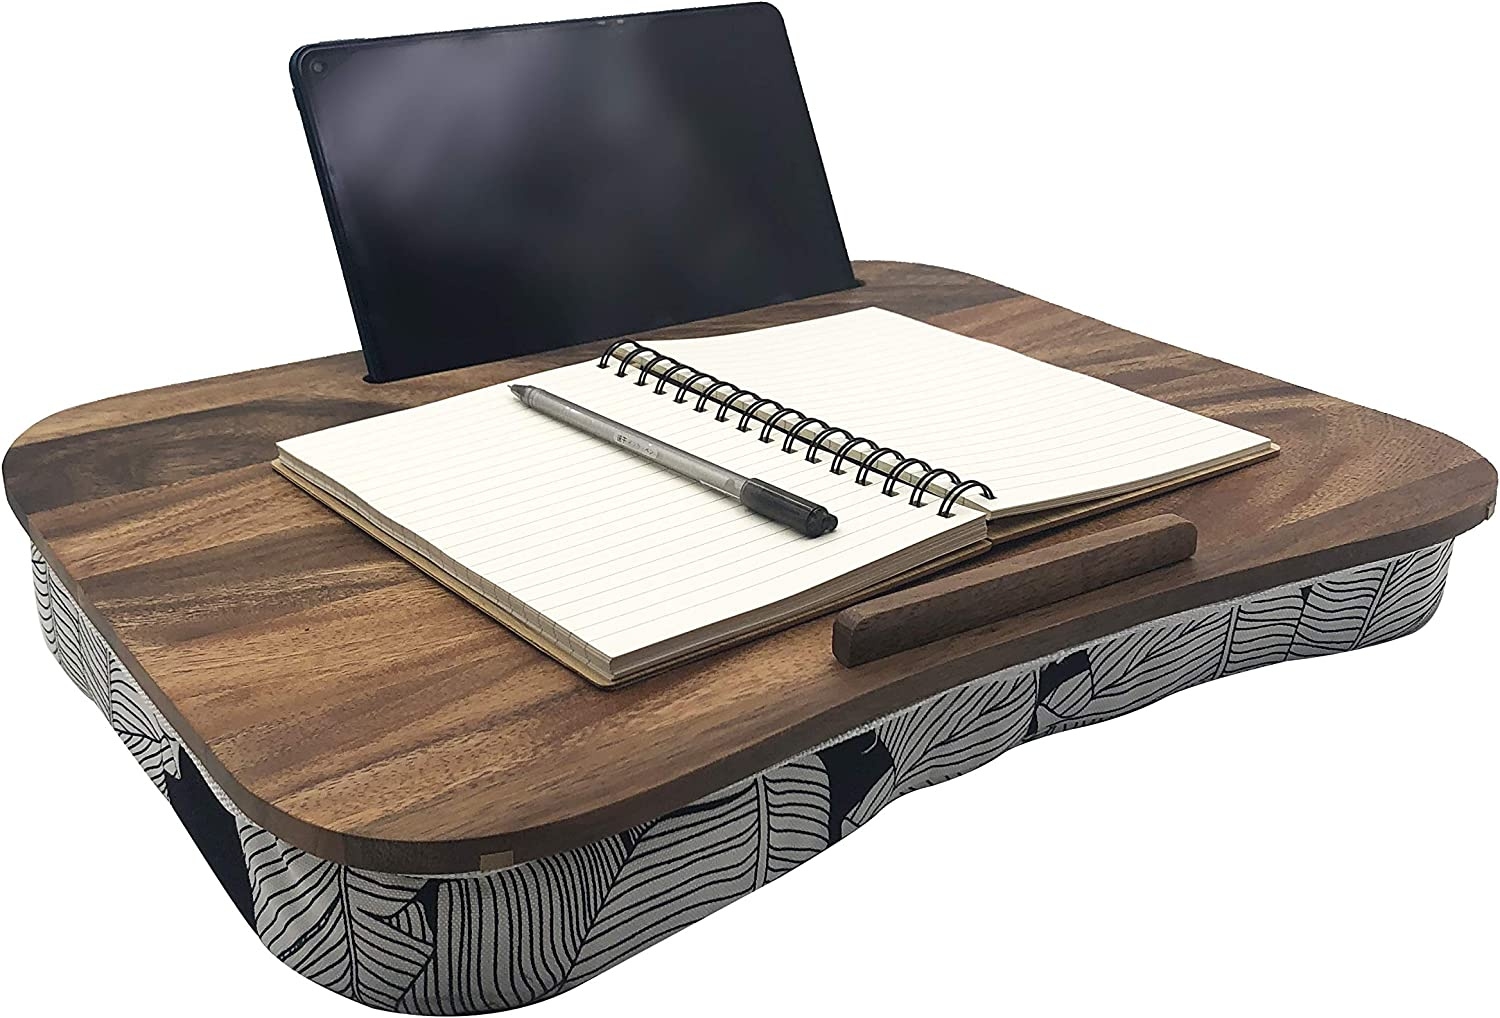 Portable Laptop Desk with Pillow Cushion, Natural Walnut Lap Stand with Device Ledge, Fits up to 15.6 inches